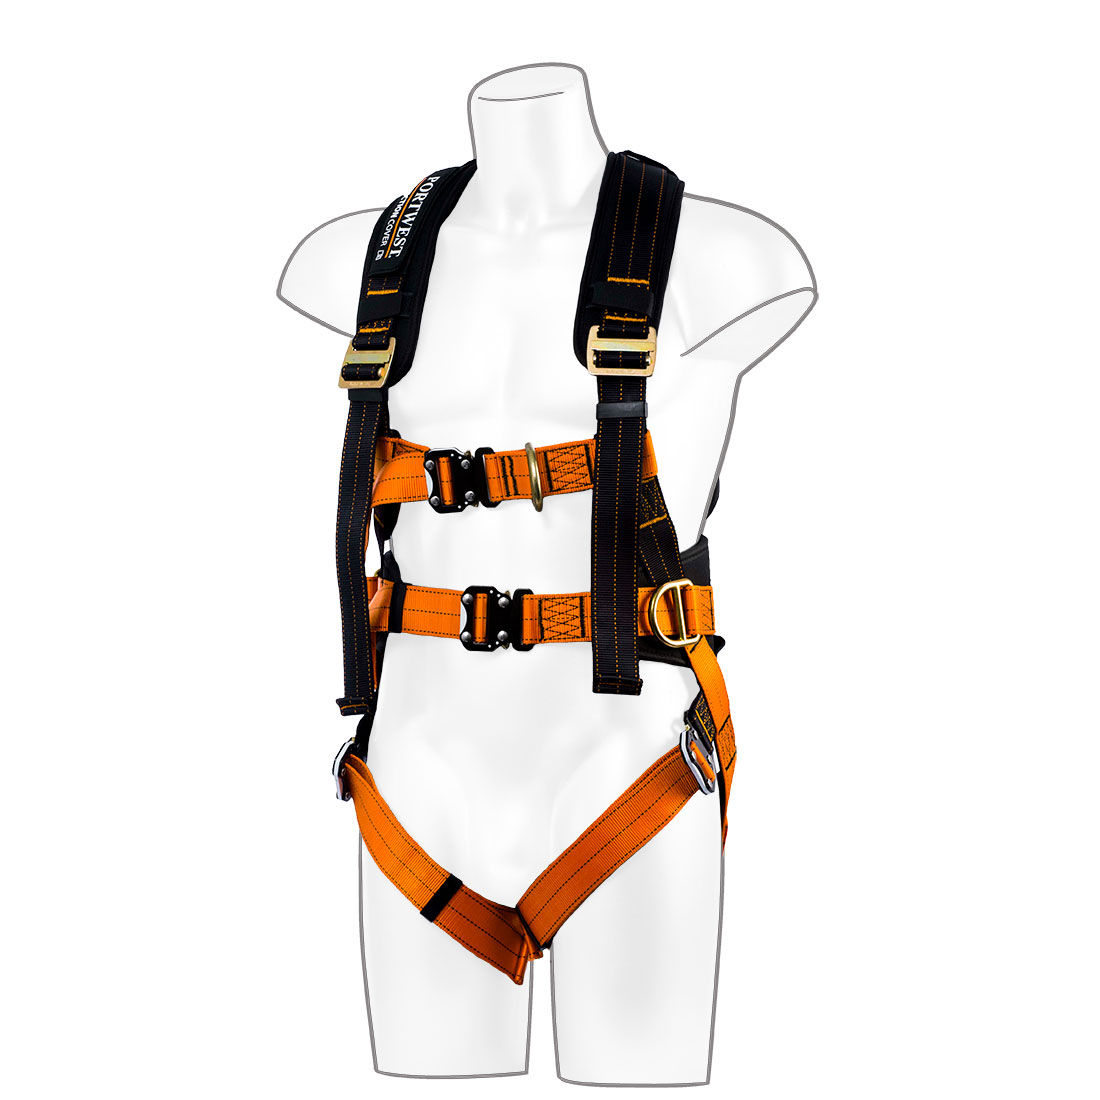 Ultra 3-Point Harness Black/Orange S/M/L